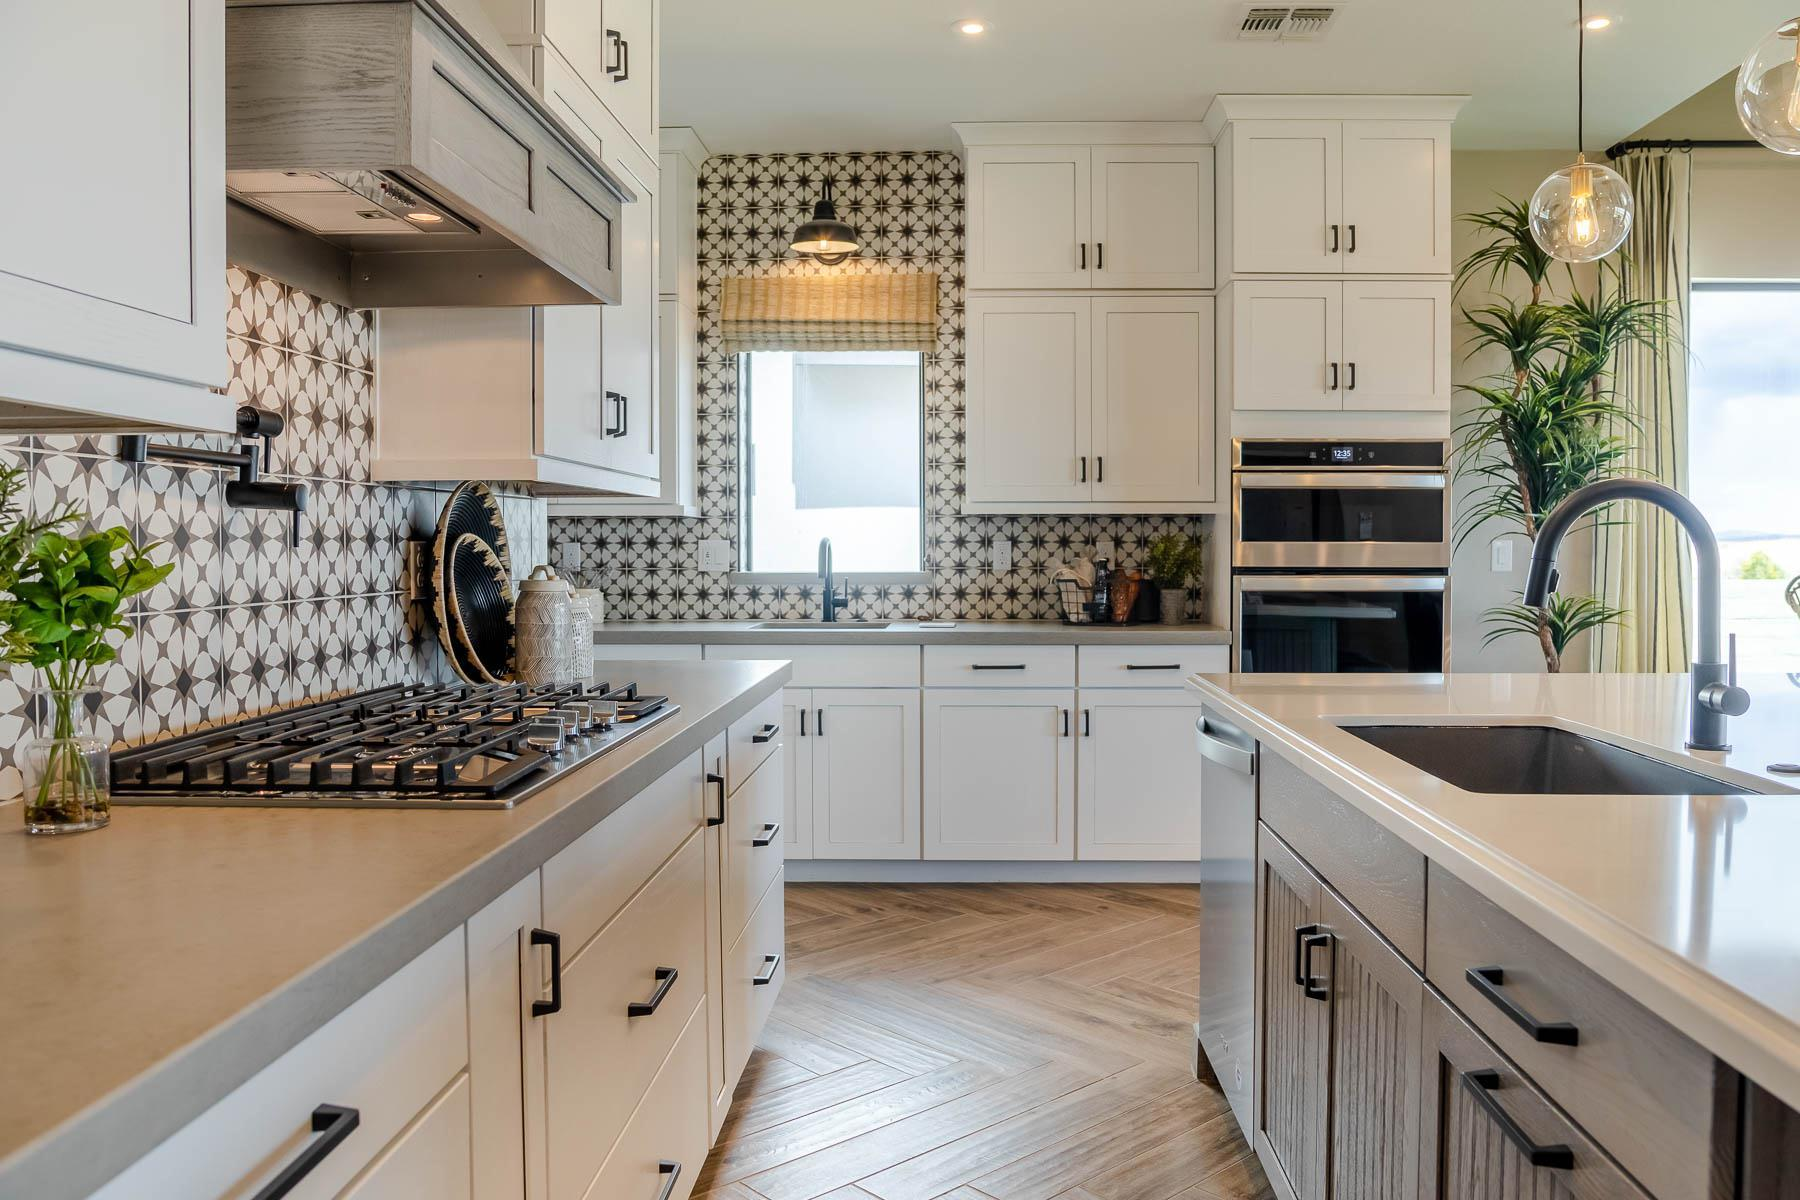 Kitchen featured in the J604 By Mandalay Homes in Prescott, AZ